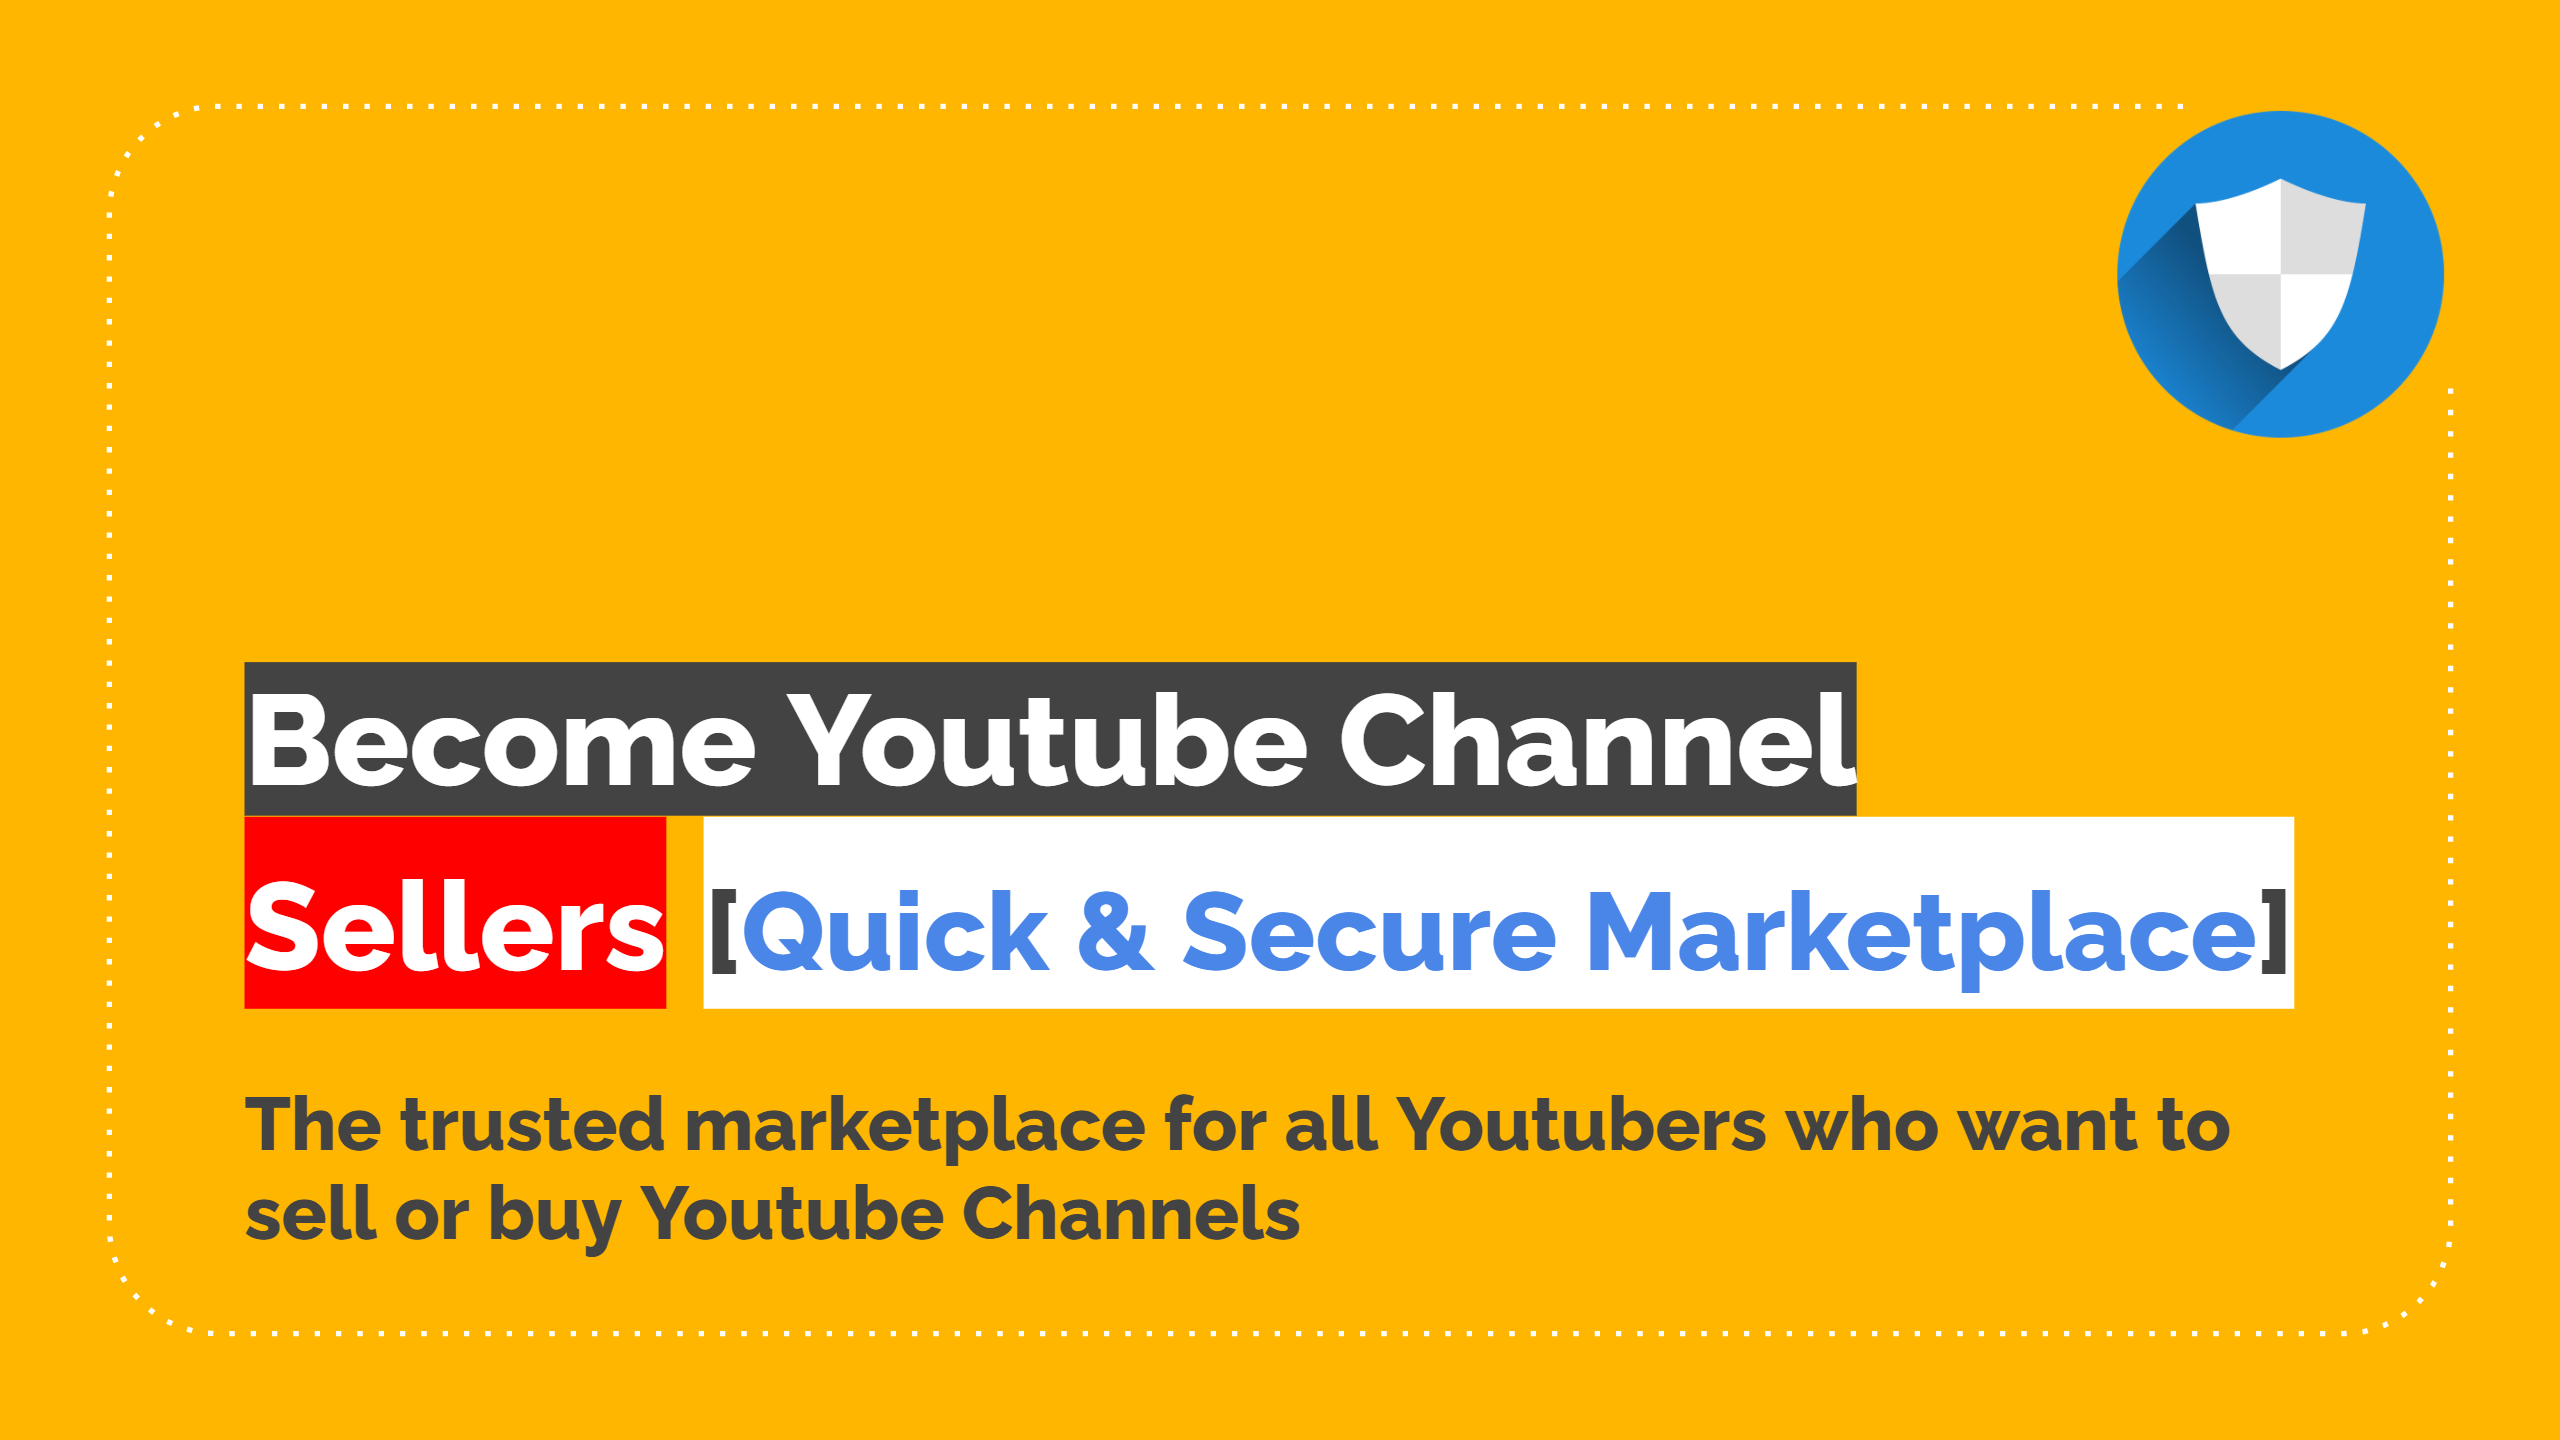 Become Youtube Channel Seller